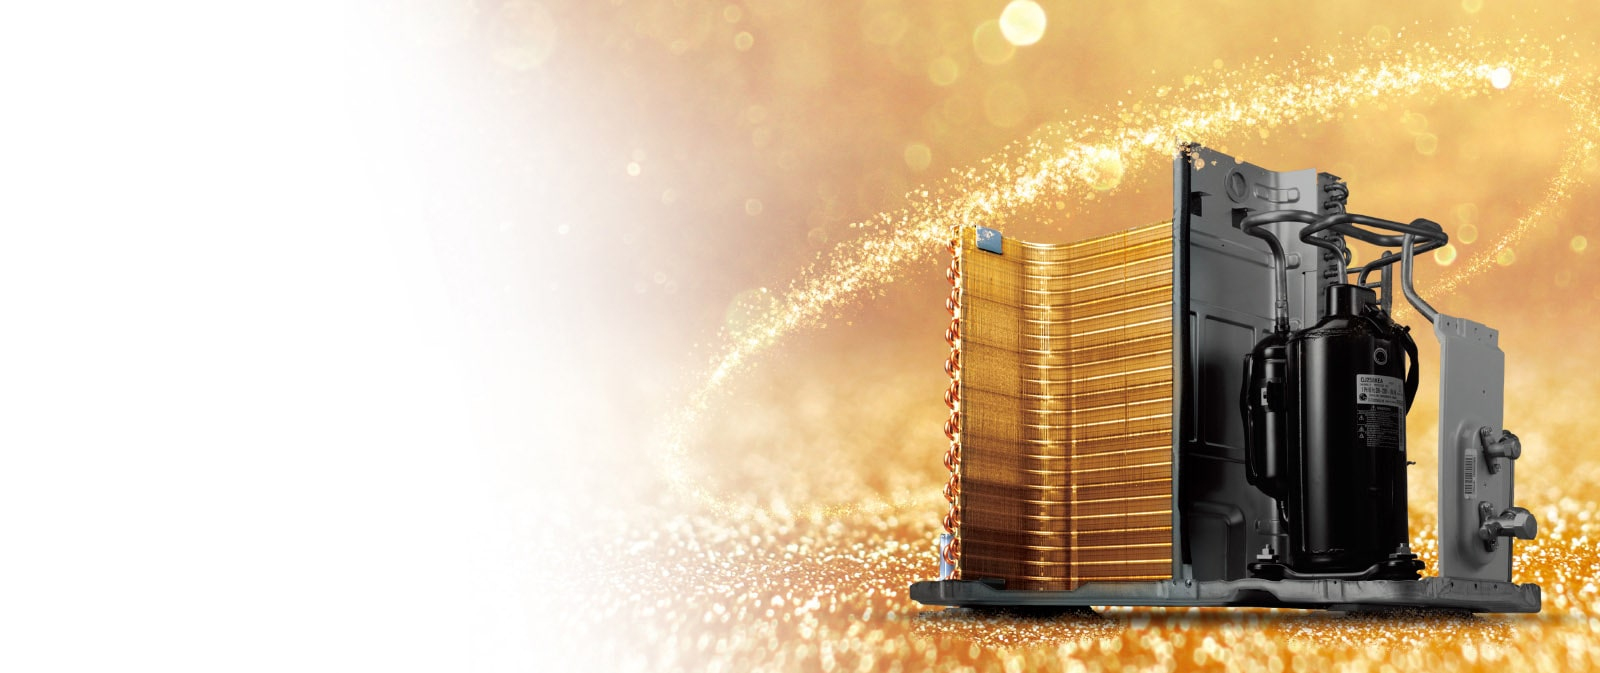 Gold-plated radiator